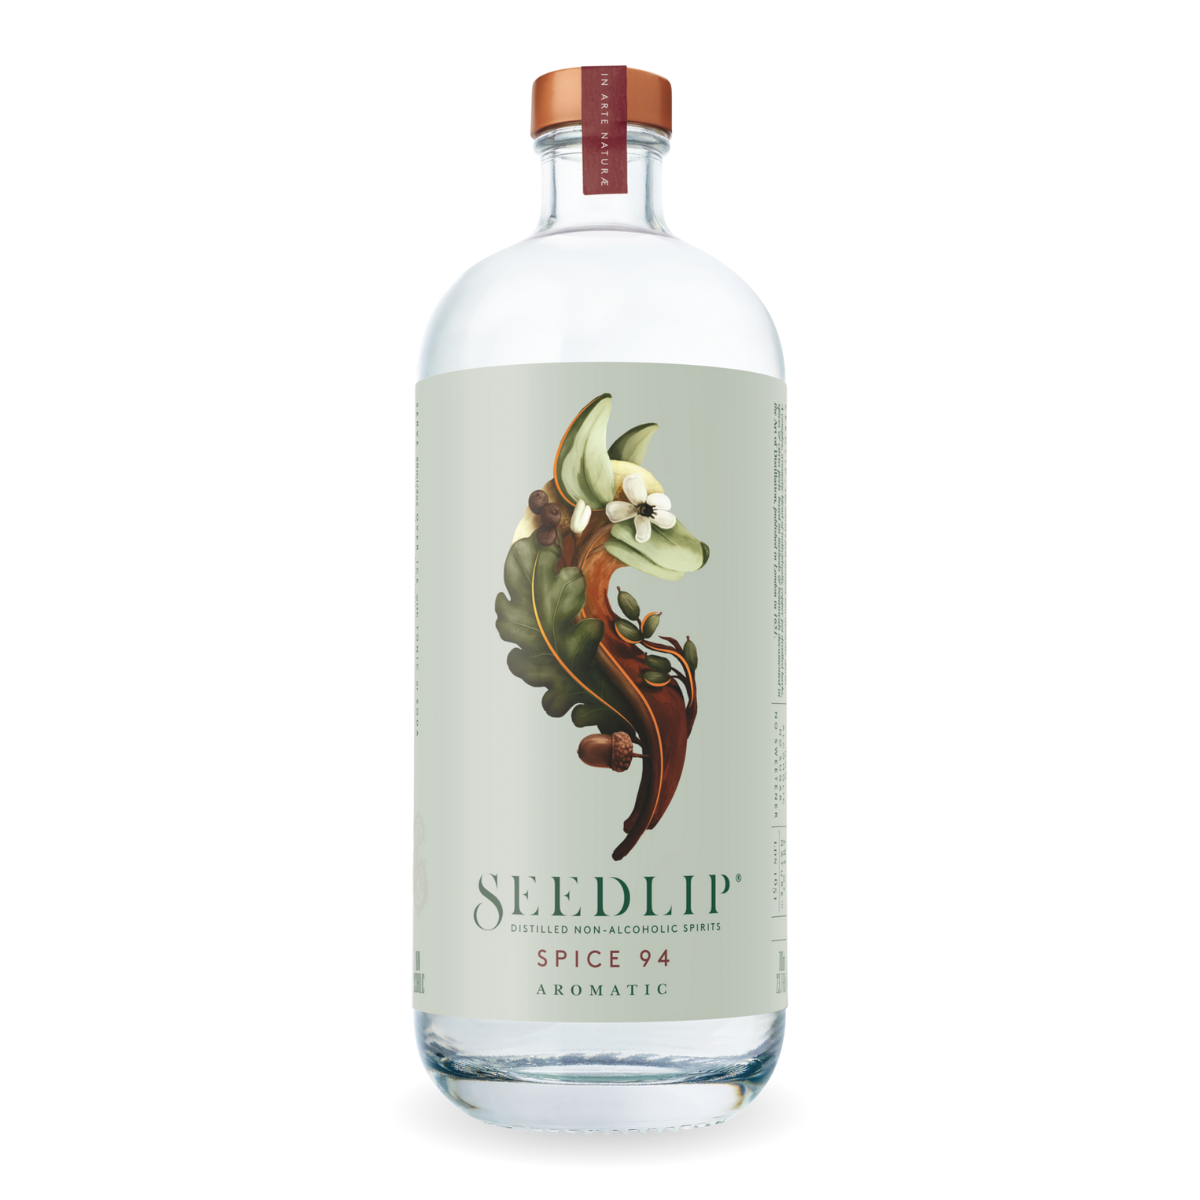 Seedlip Spice 94 Distilled Spirit (1 x 750ml)